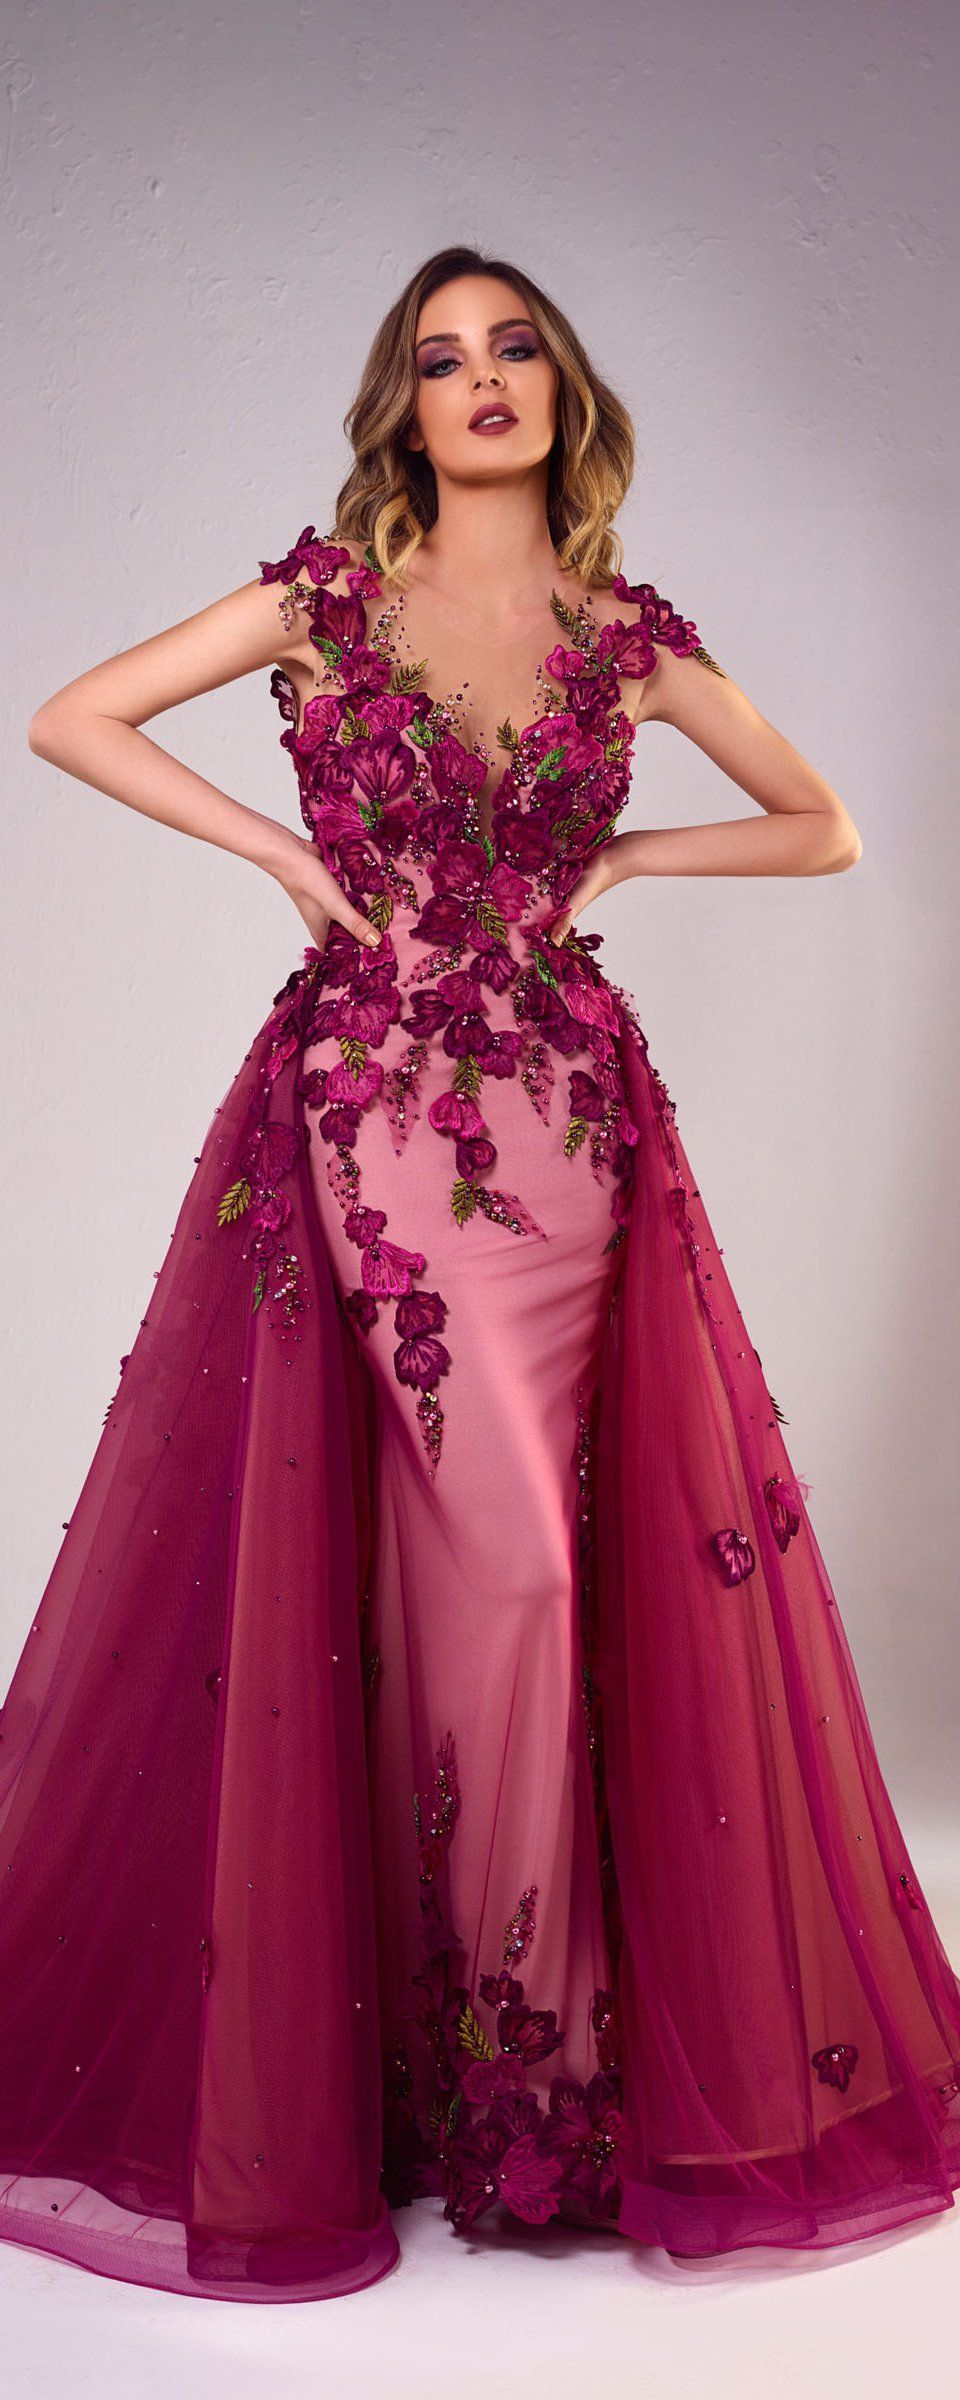 197566073ddd Floral Fashion · Tony Chaaya 2018 collection - Couture -  http://www.orientpalms.com